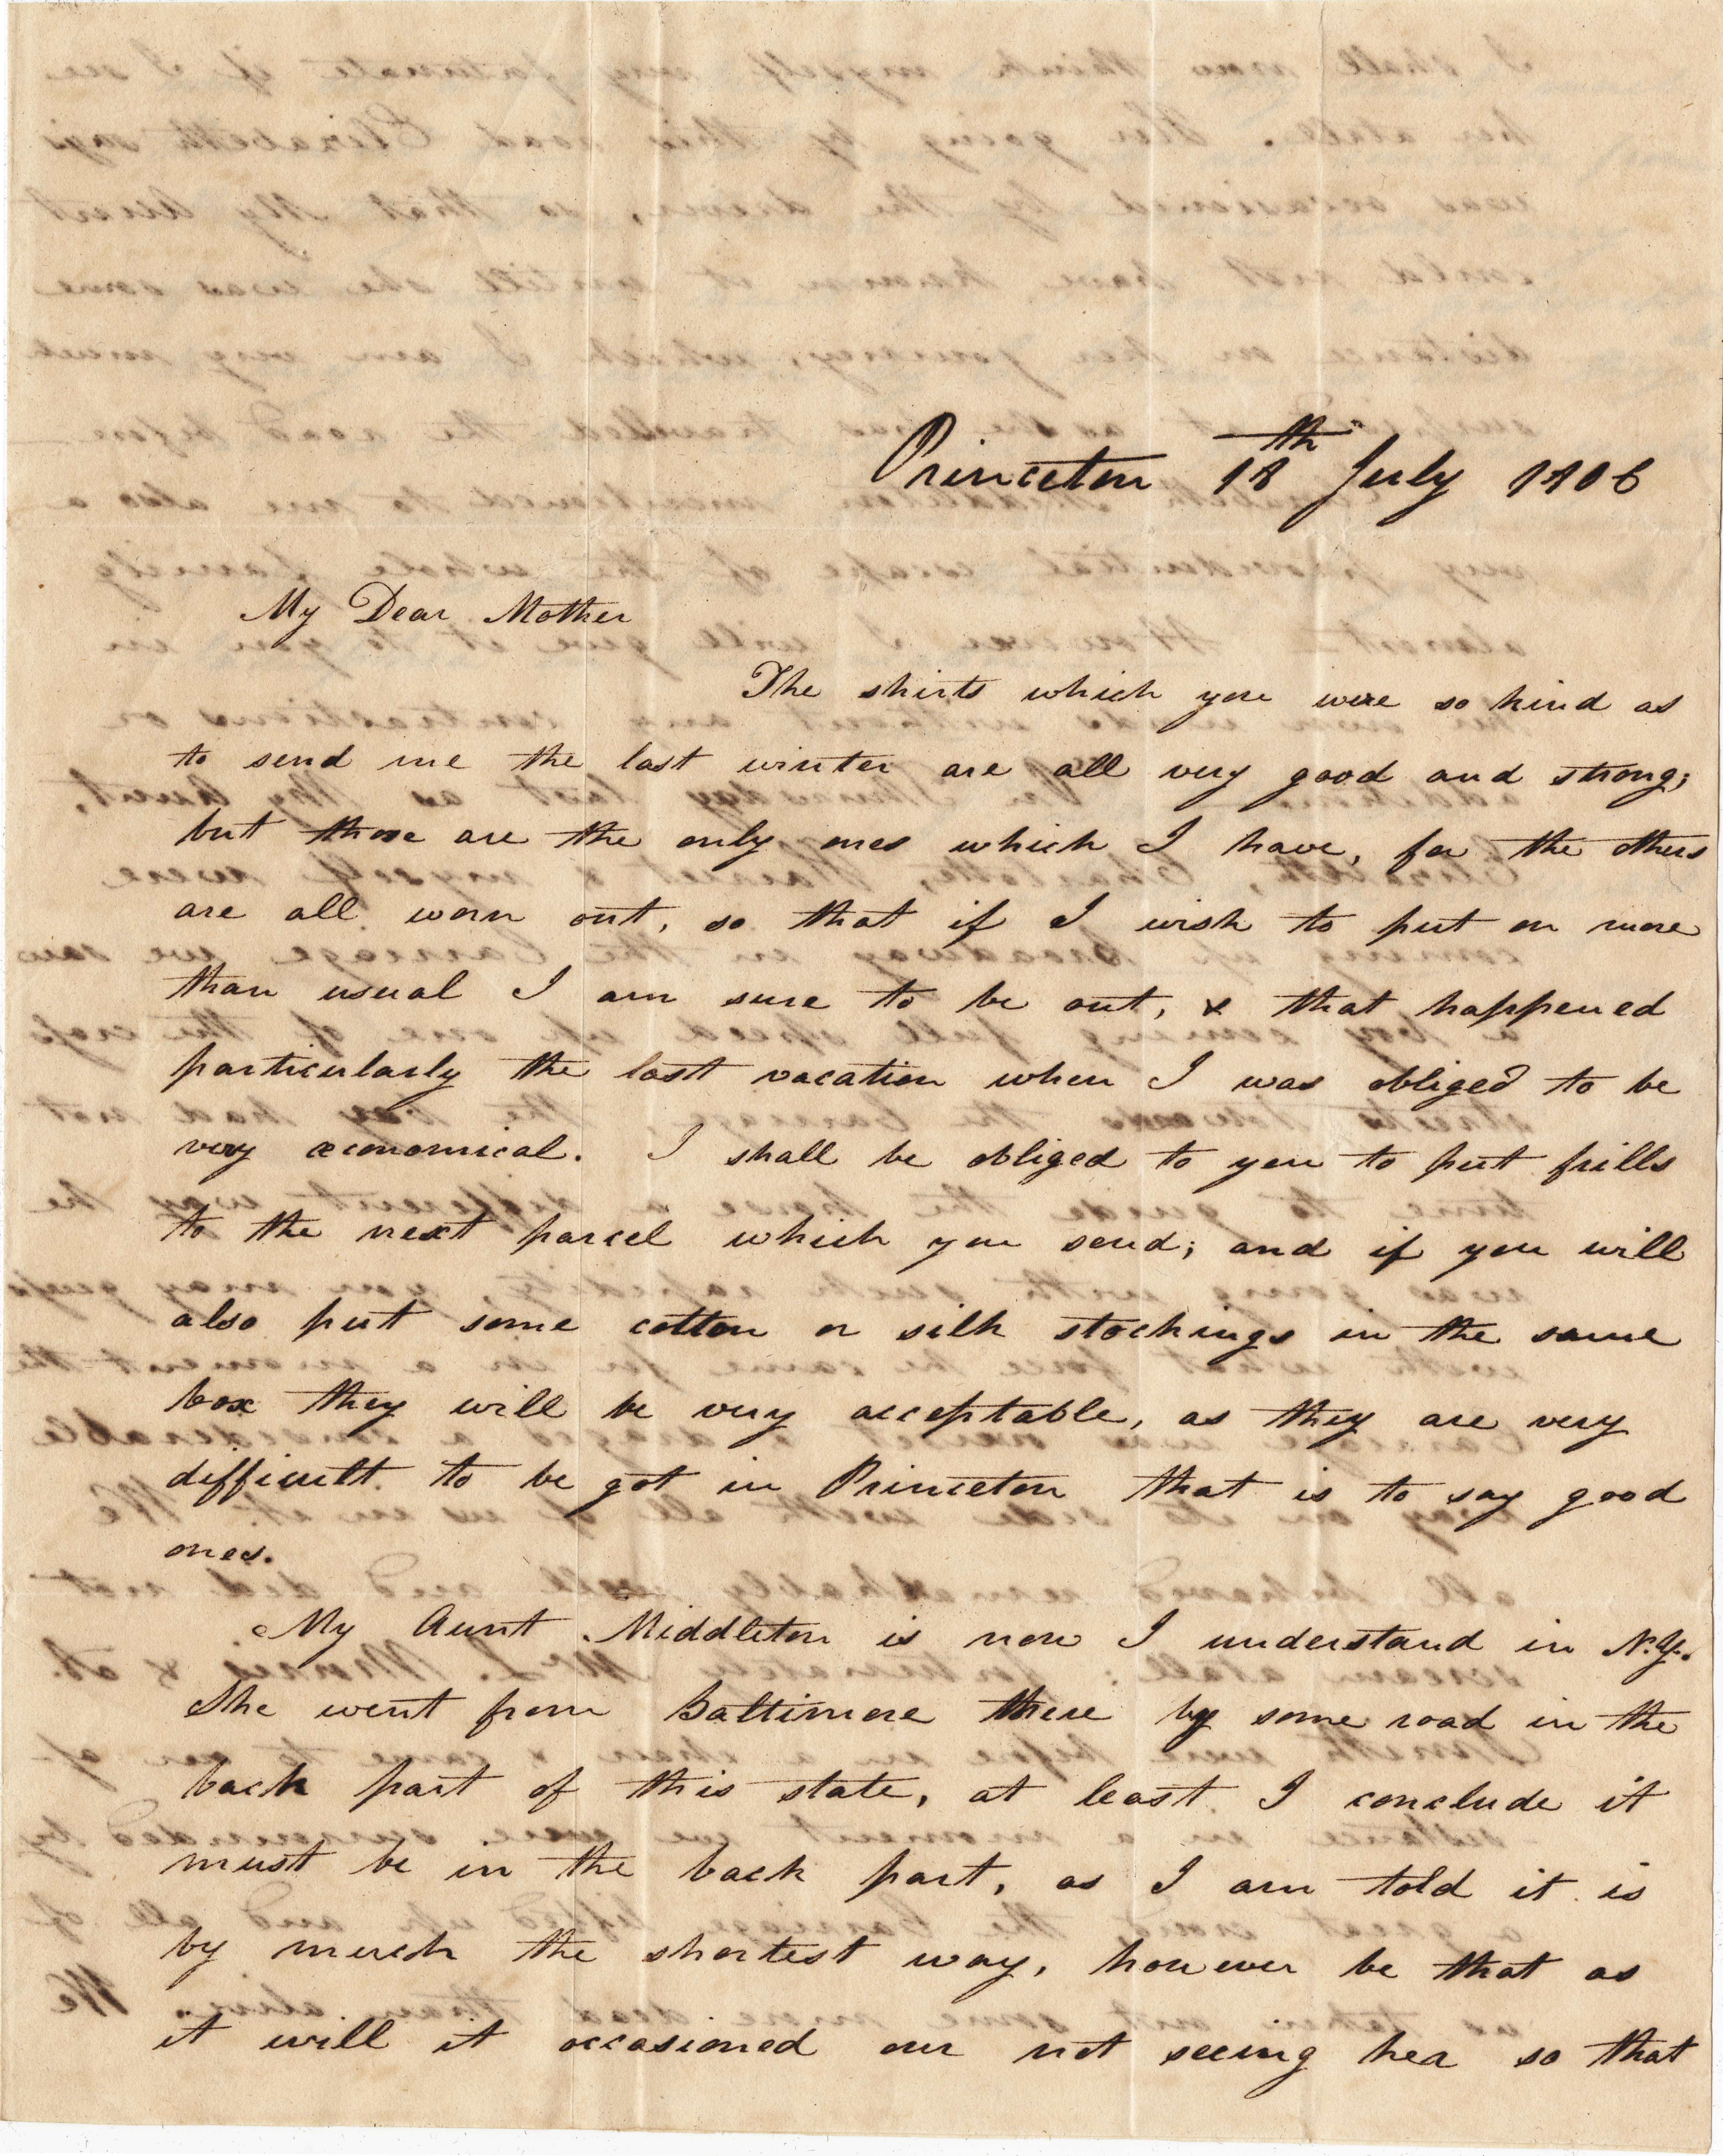 001. Nathaniel Heyward (II) to Mother -- July 18, 1806